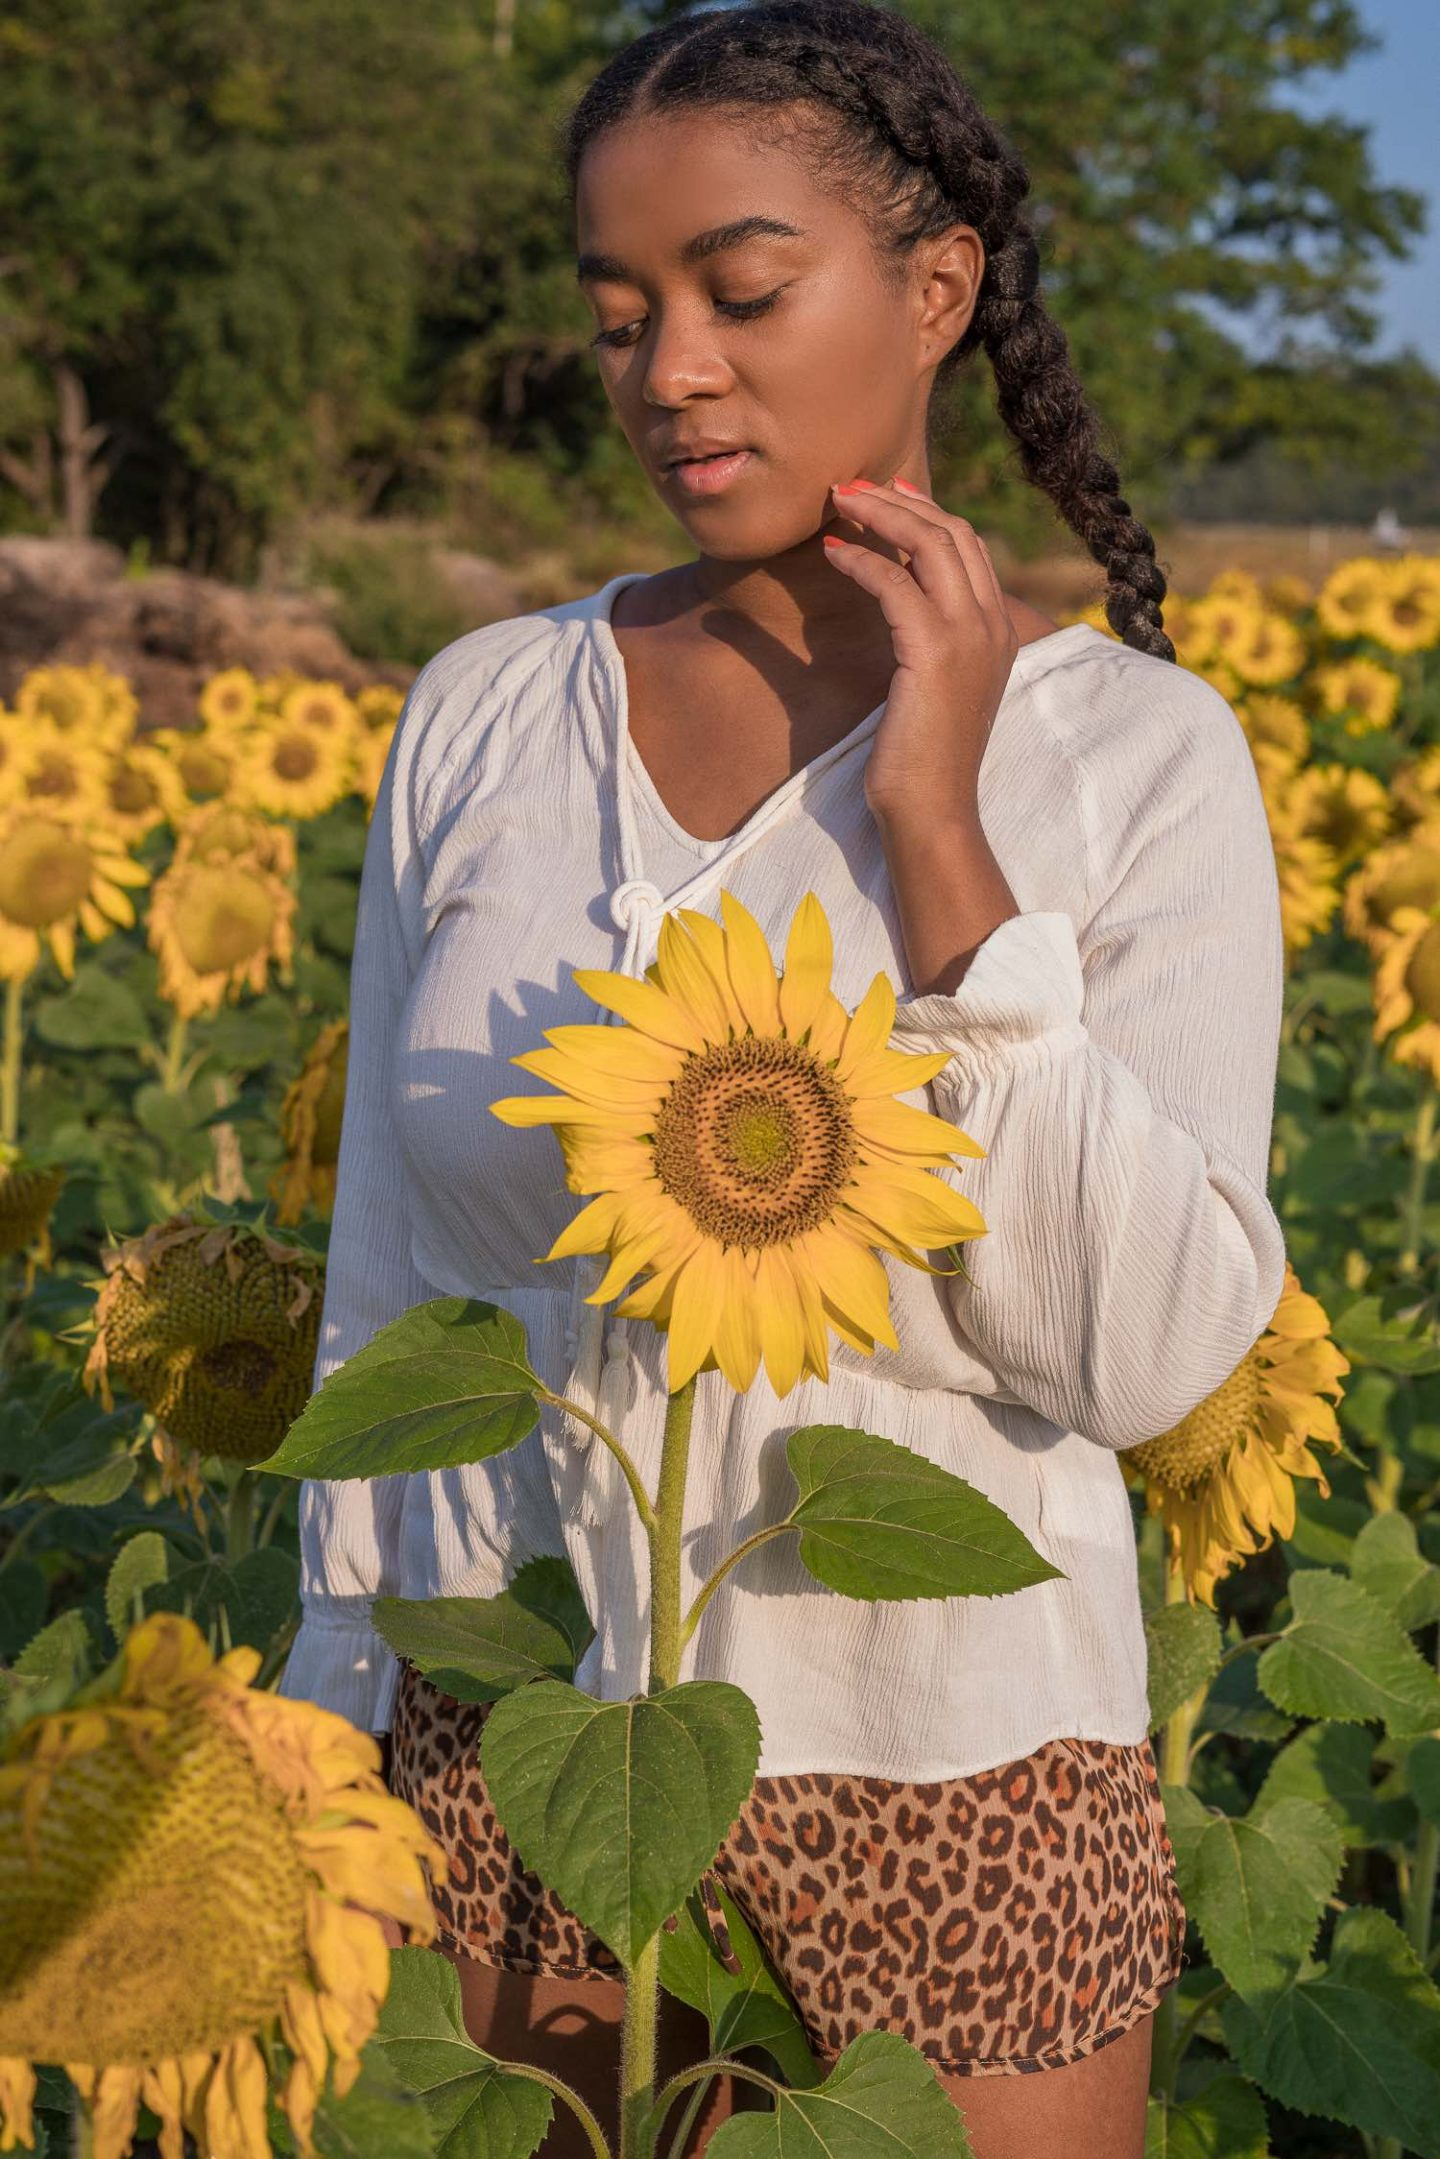 Blogger Pictures in a Sunflower field